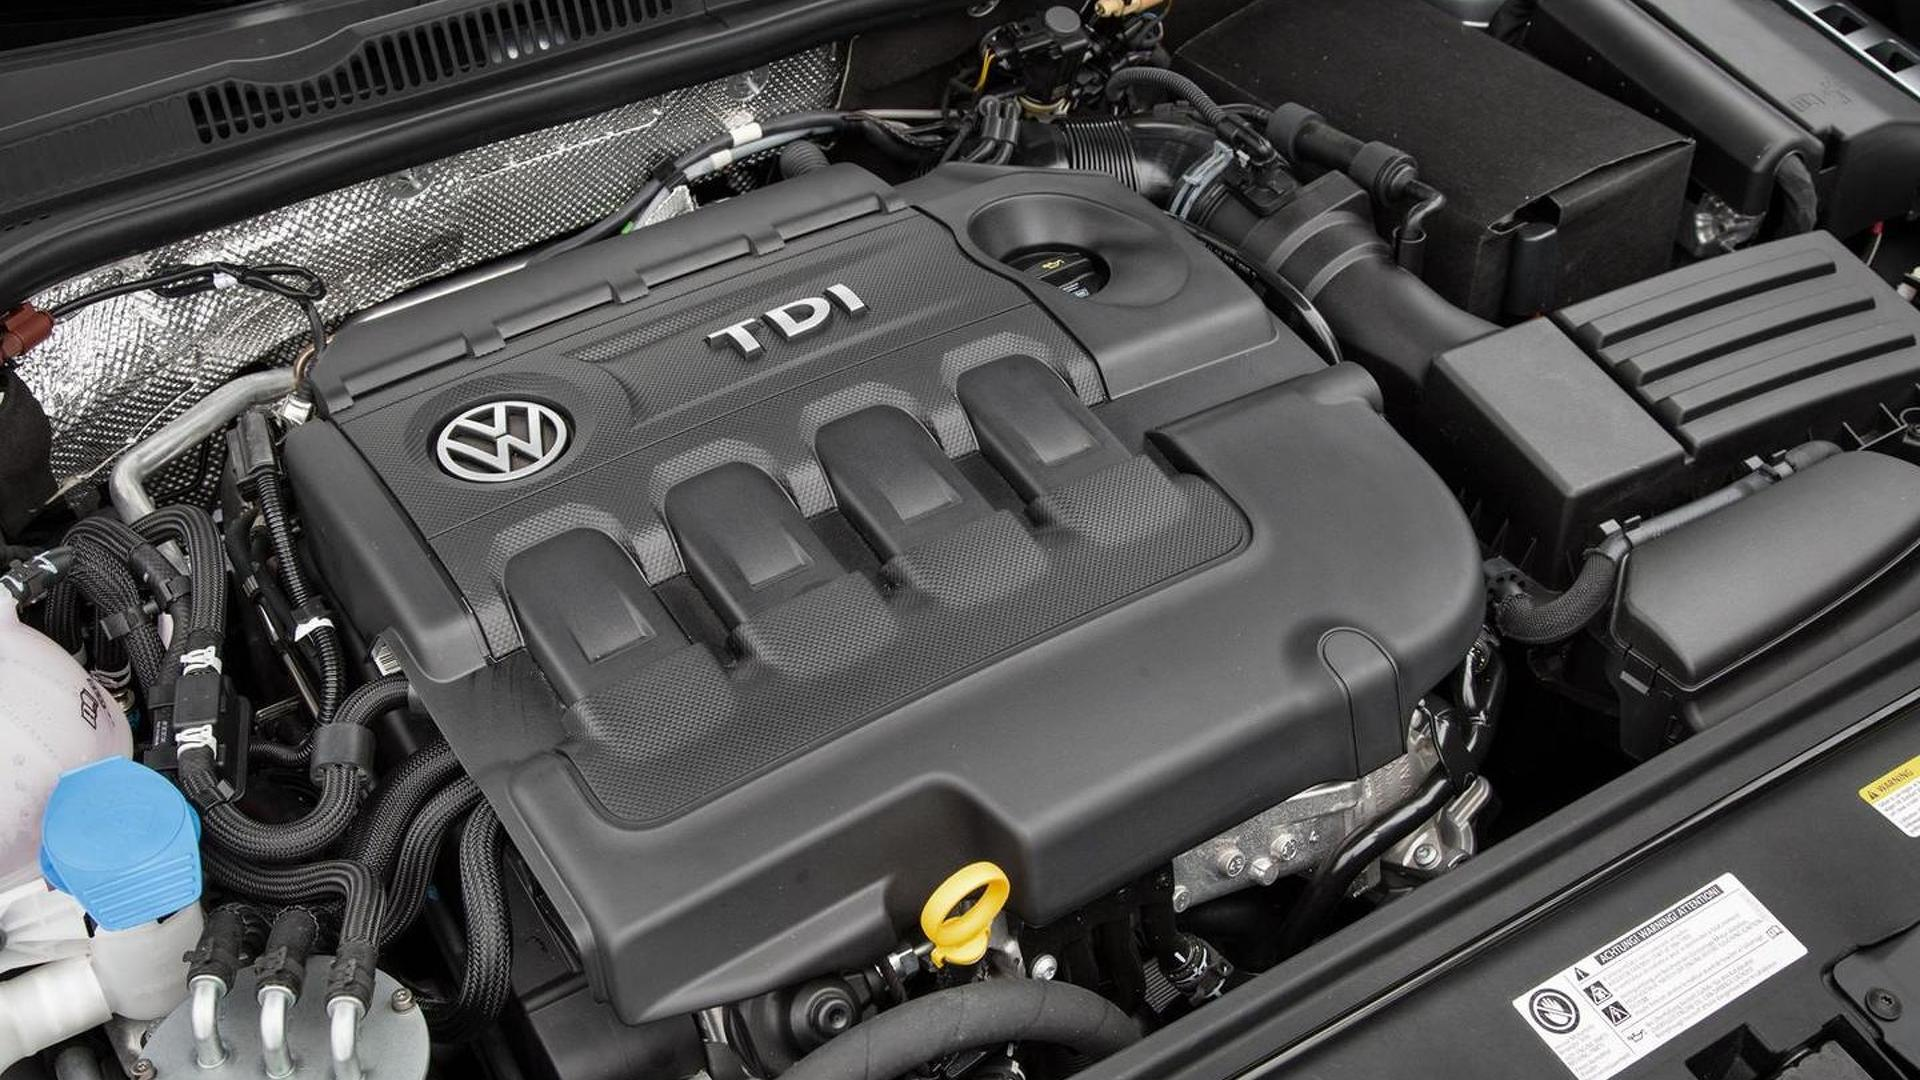 Volkswagen of America admits 2016MY 2.0 TDI cars have suspect software too